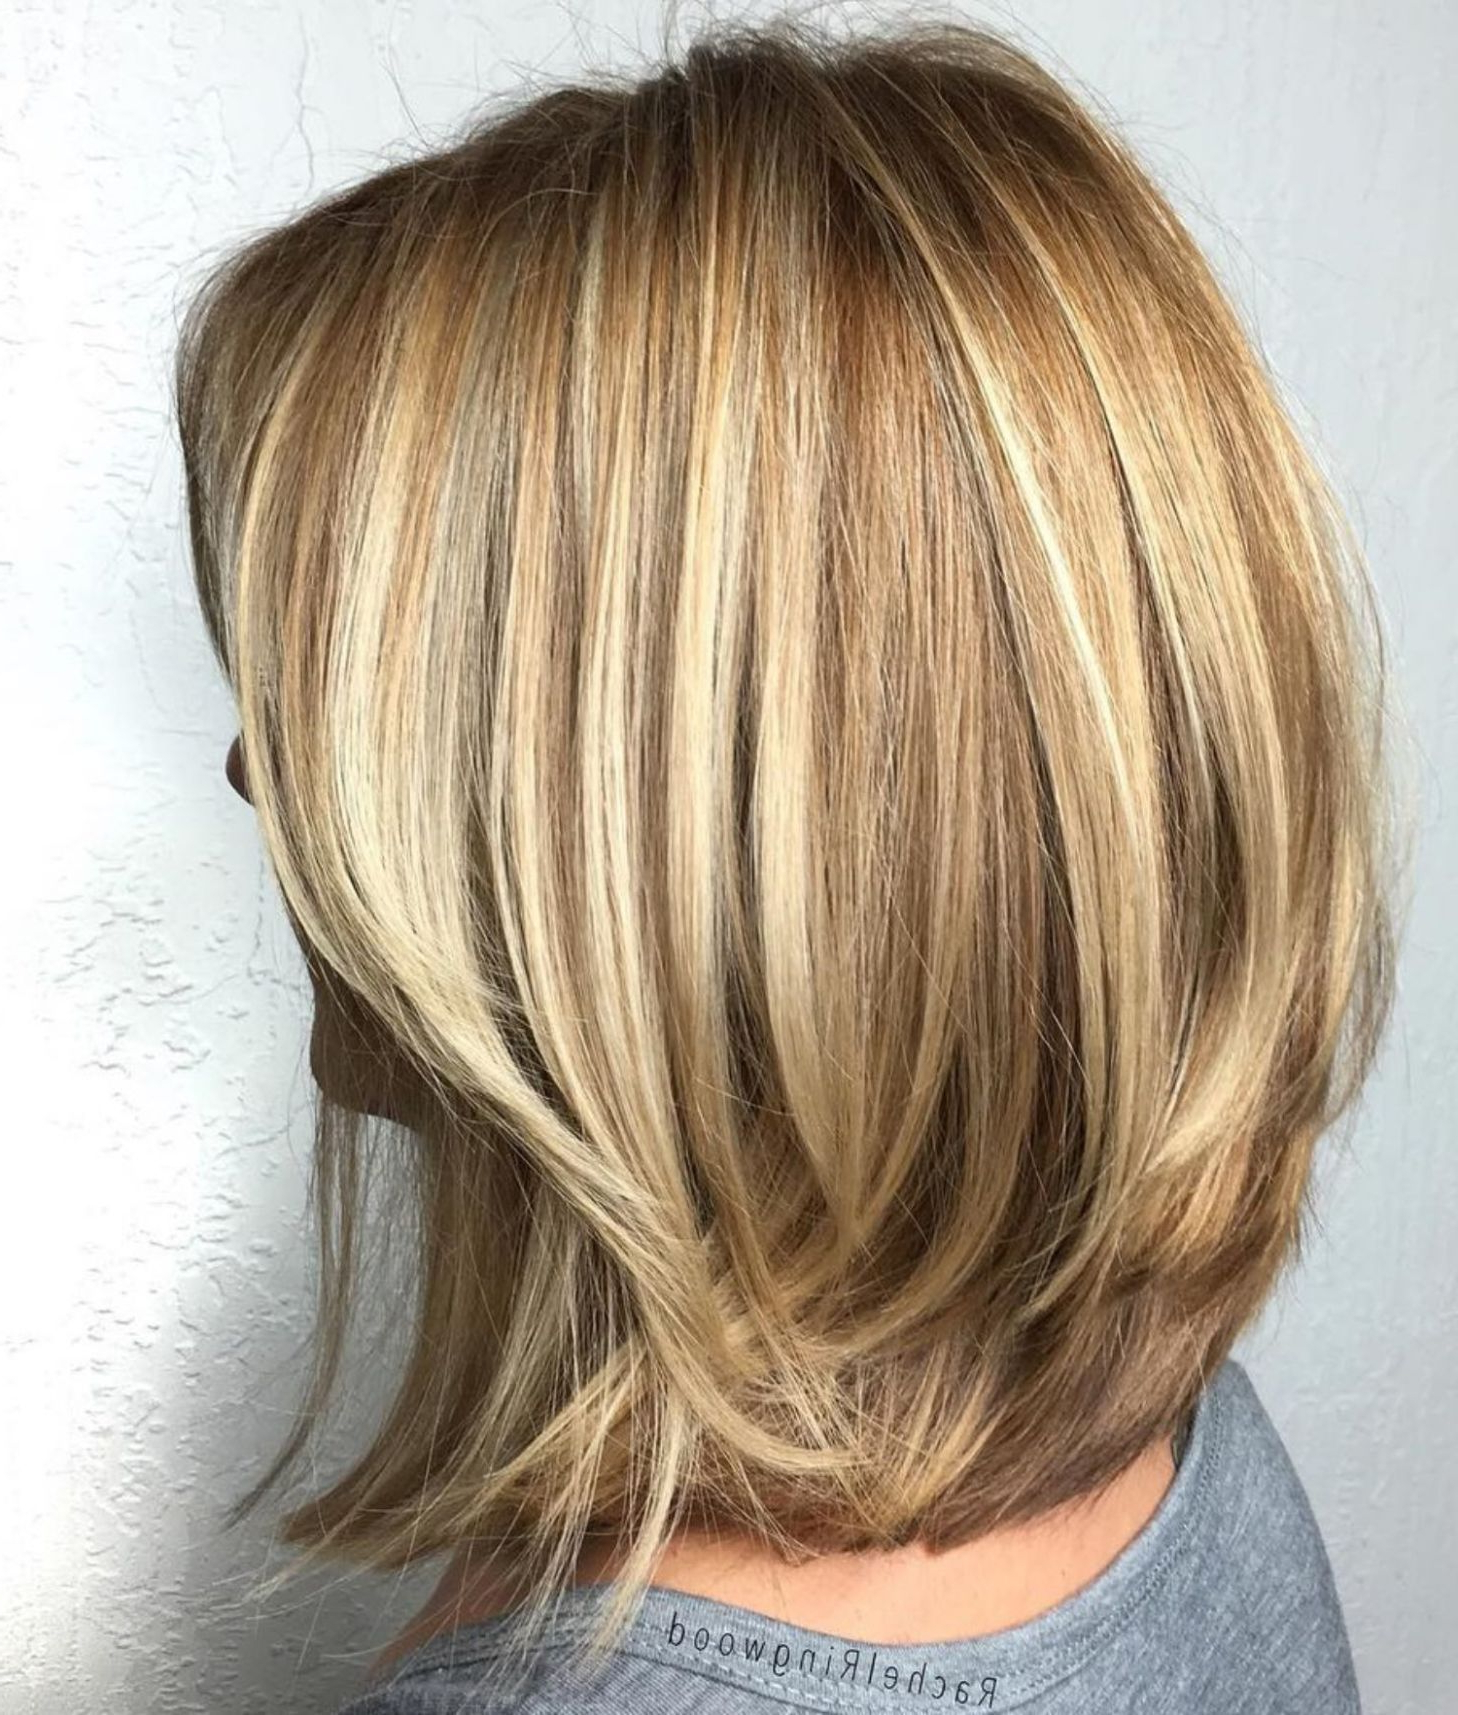 Medium Hair For Preferred Flipped Lob Hairstyles With Swoopy Back Swept Layers (View 2 of 20)